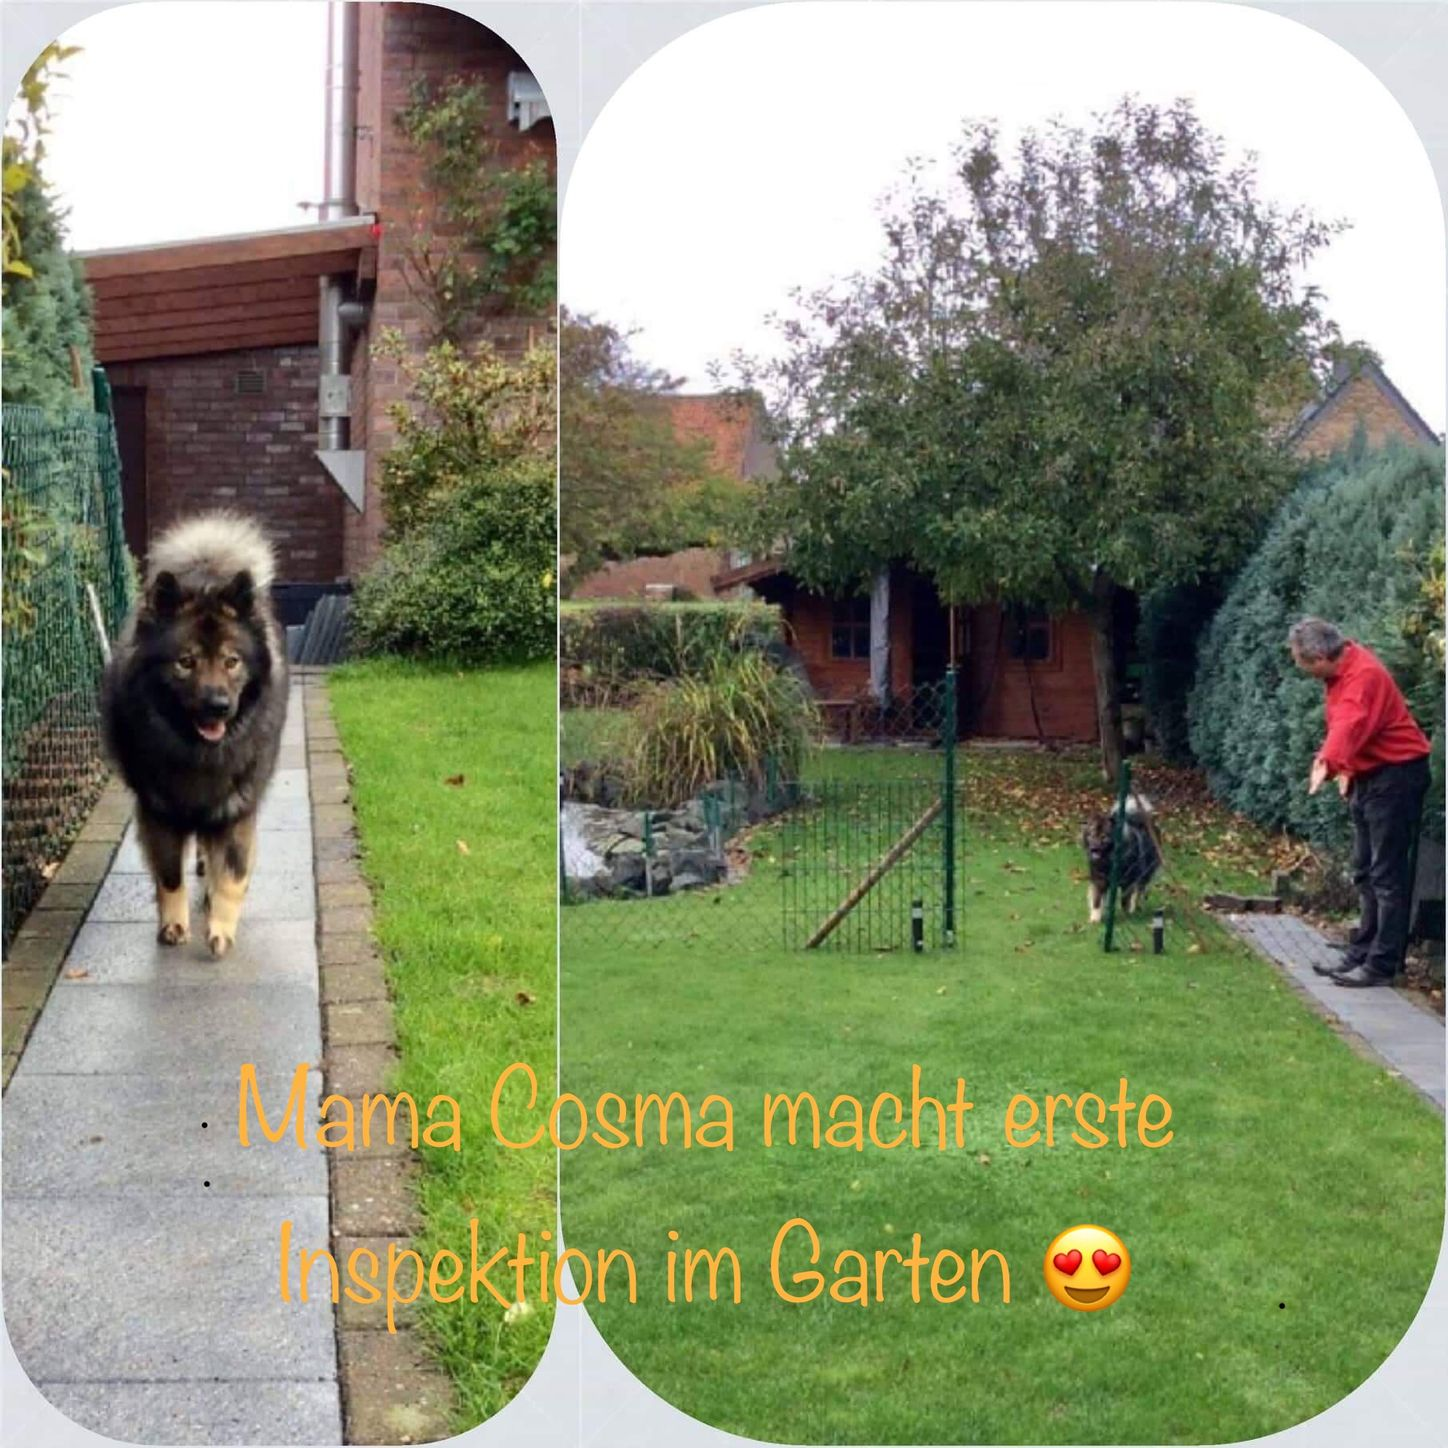 Garteninspektion